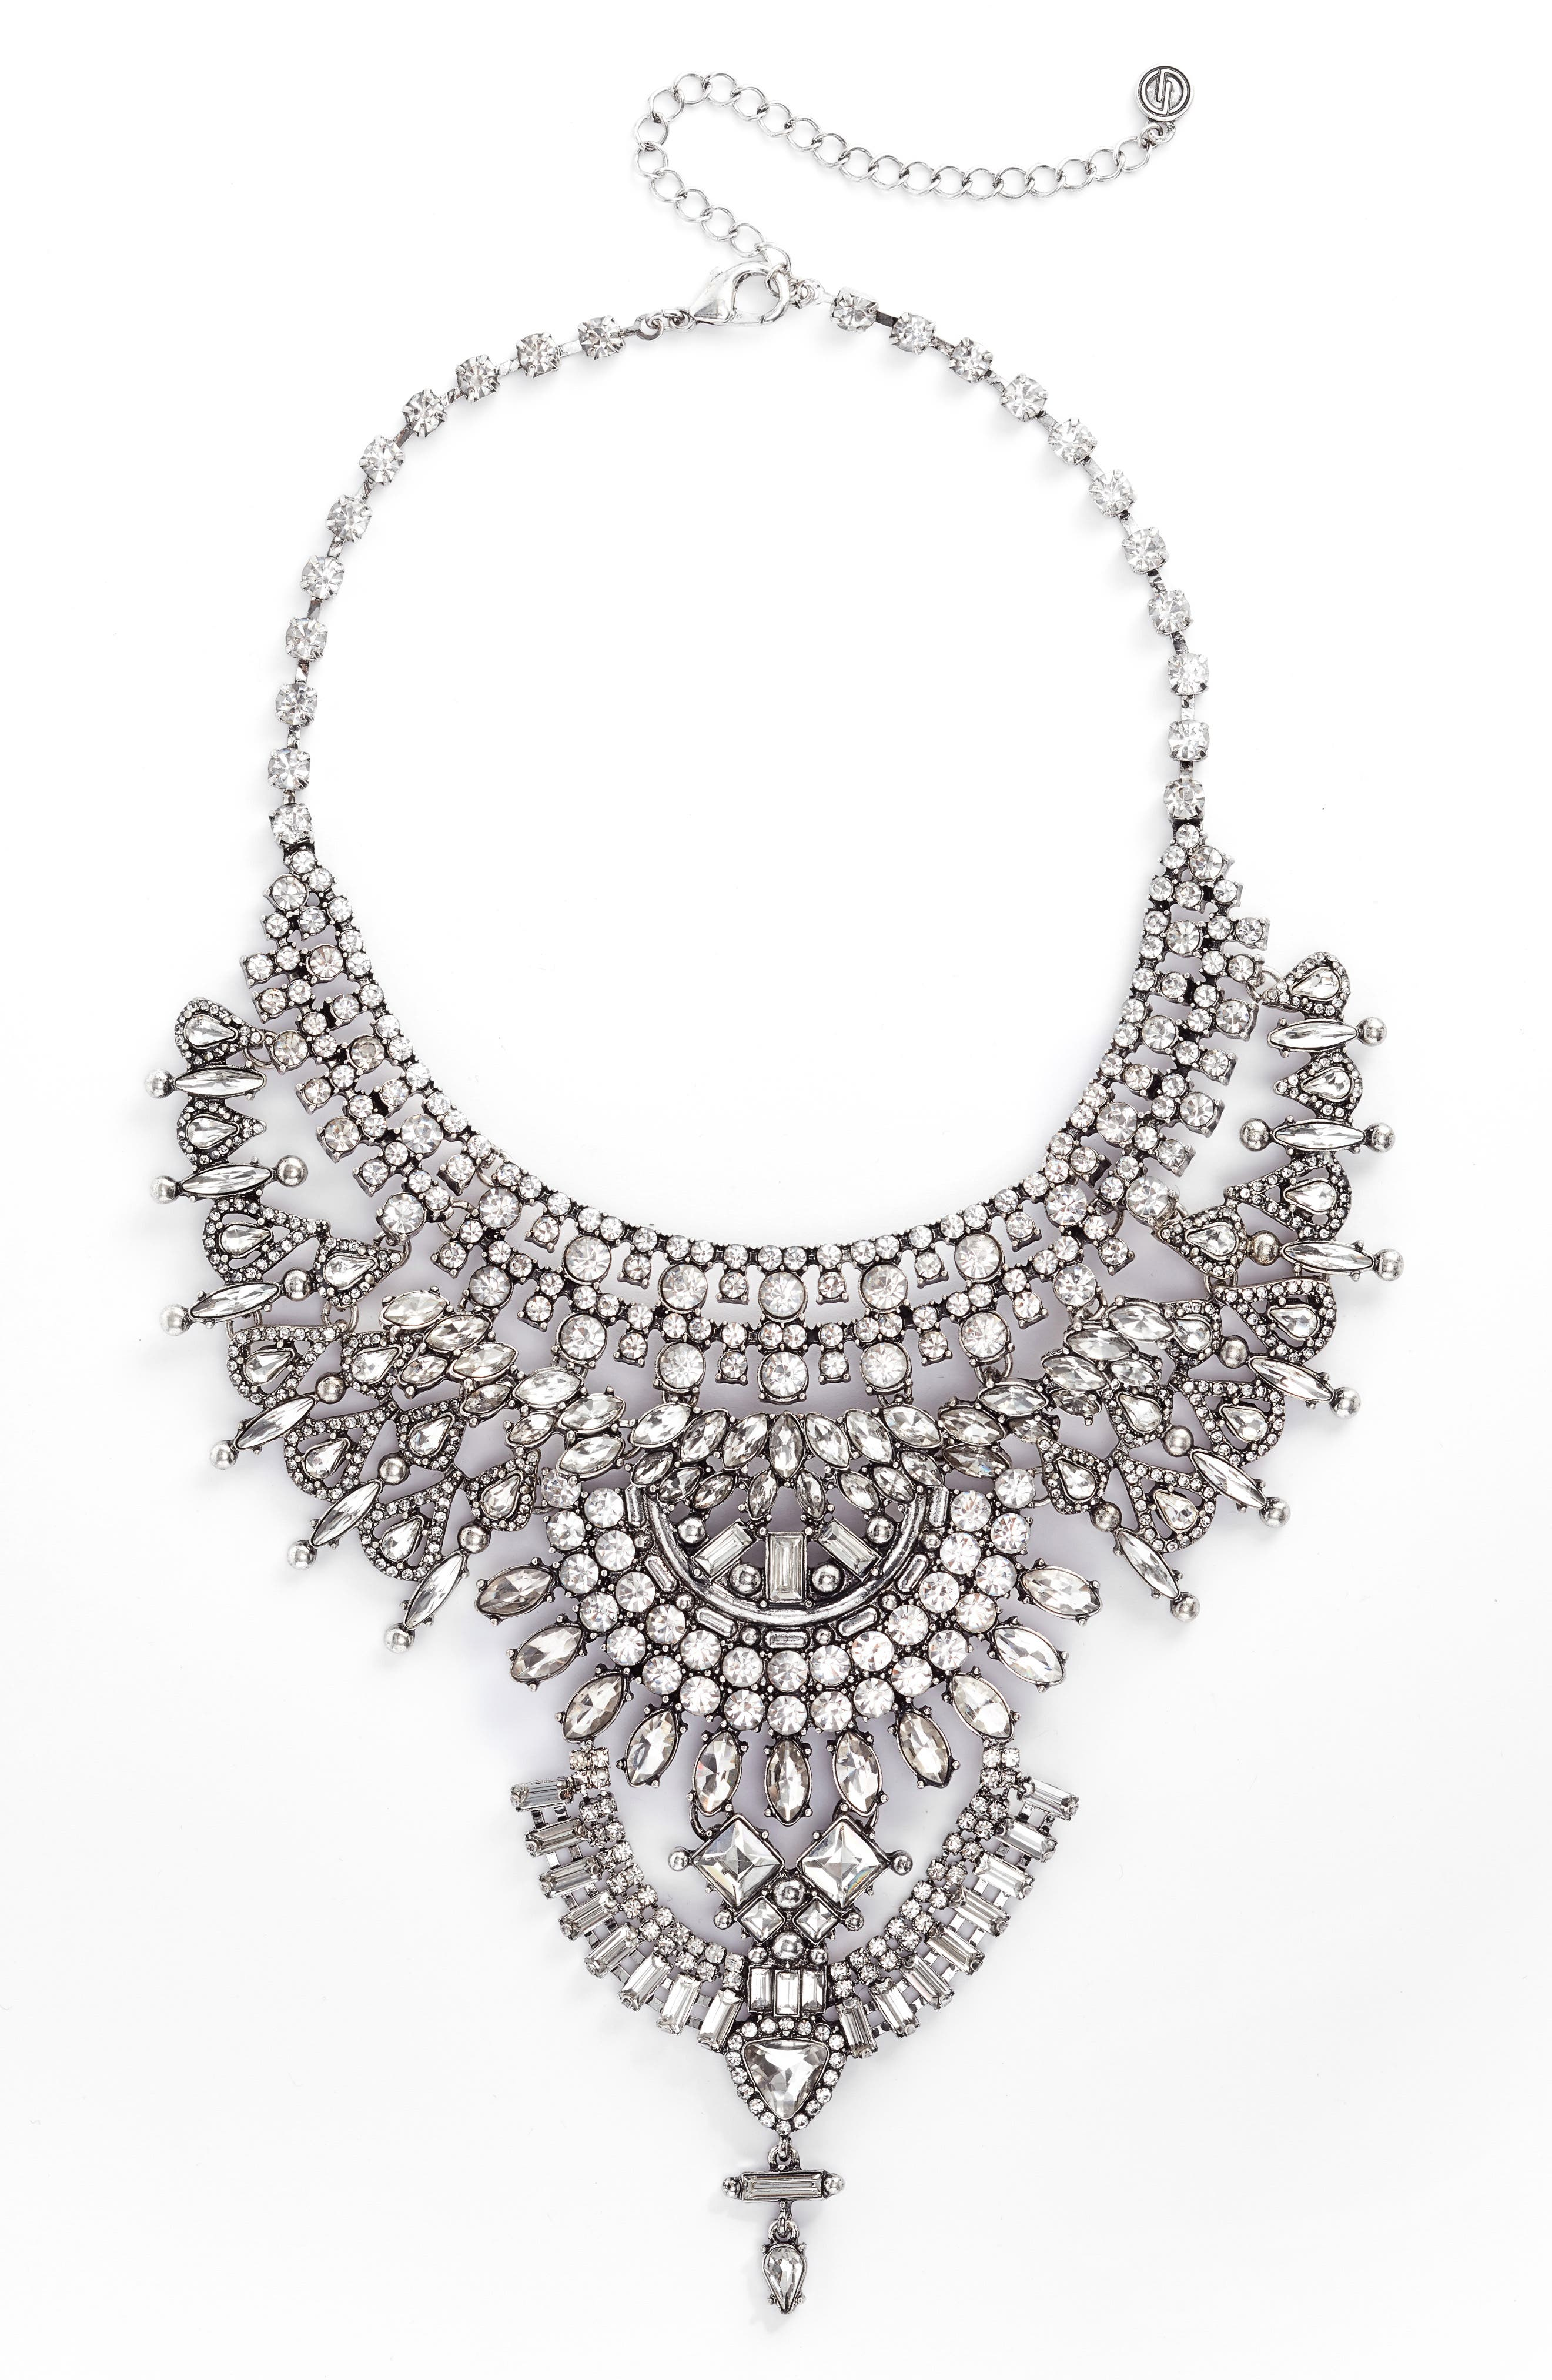 DLNLX BY DYLANLEX,                             Chain & Crystal Necklace,                             Main thumbnail 1, color,                             040